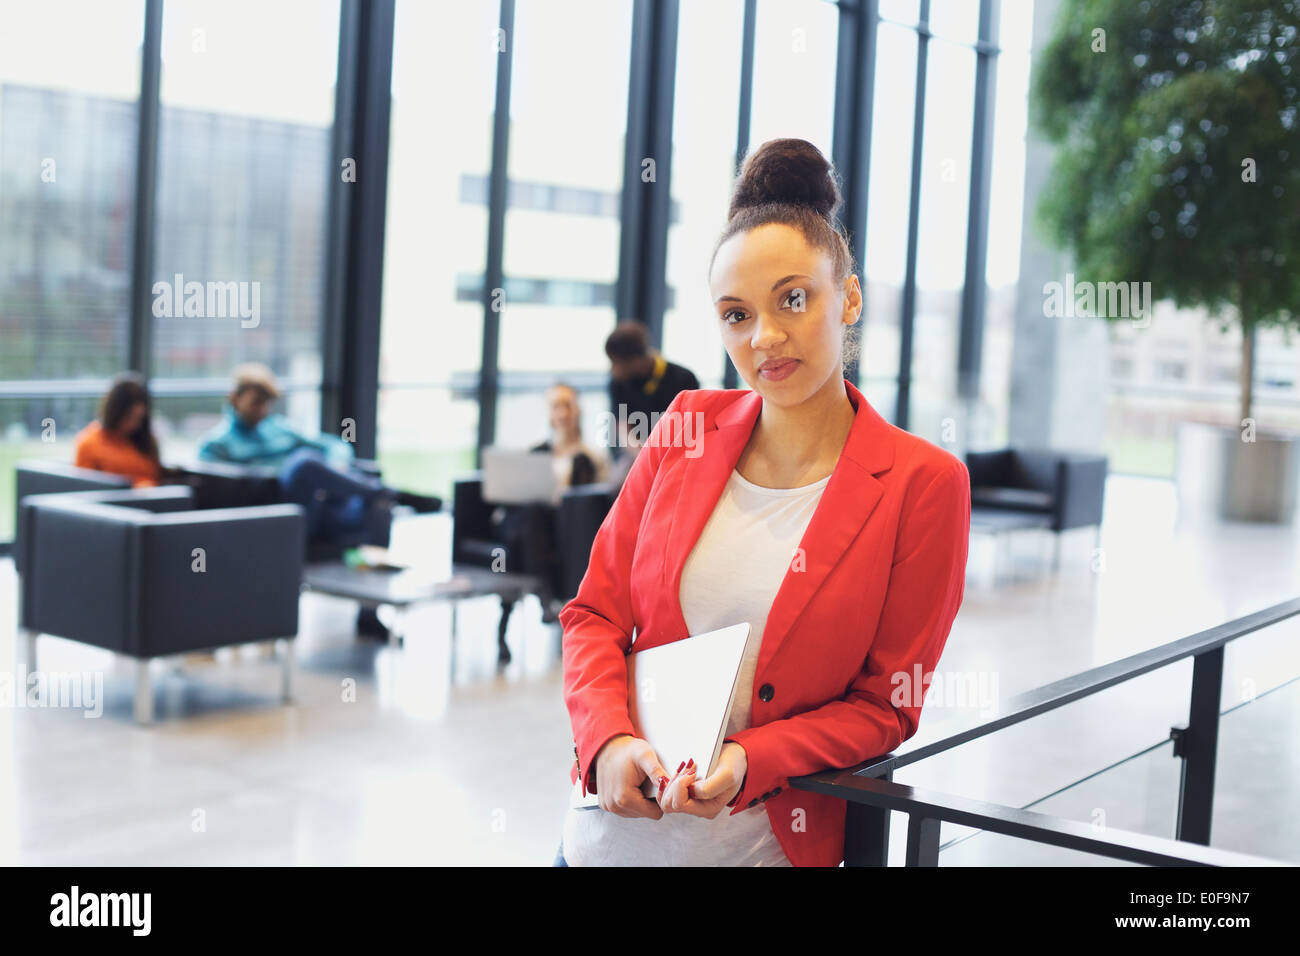 Confident young afro american woman holding a laptop standing by a railing looking at camera. Young businesswoman in office. - Stock Image